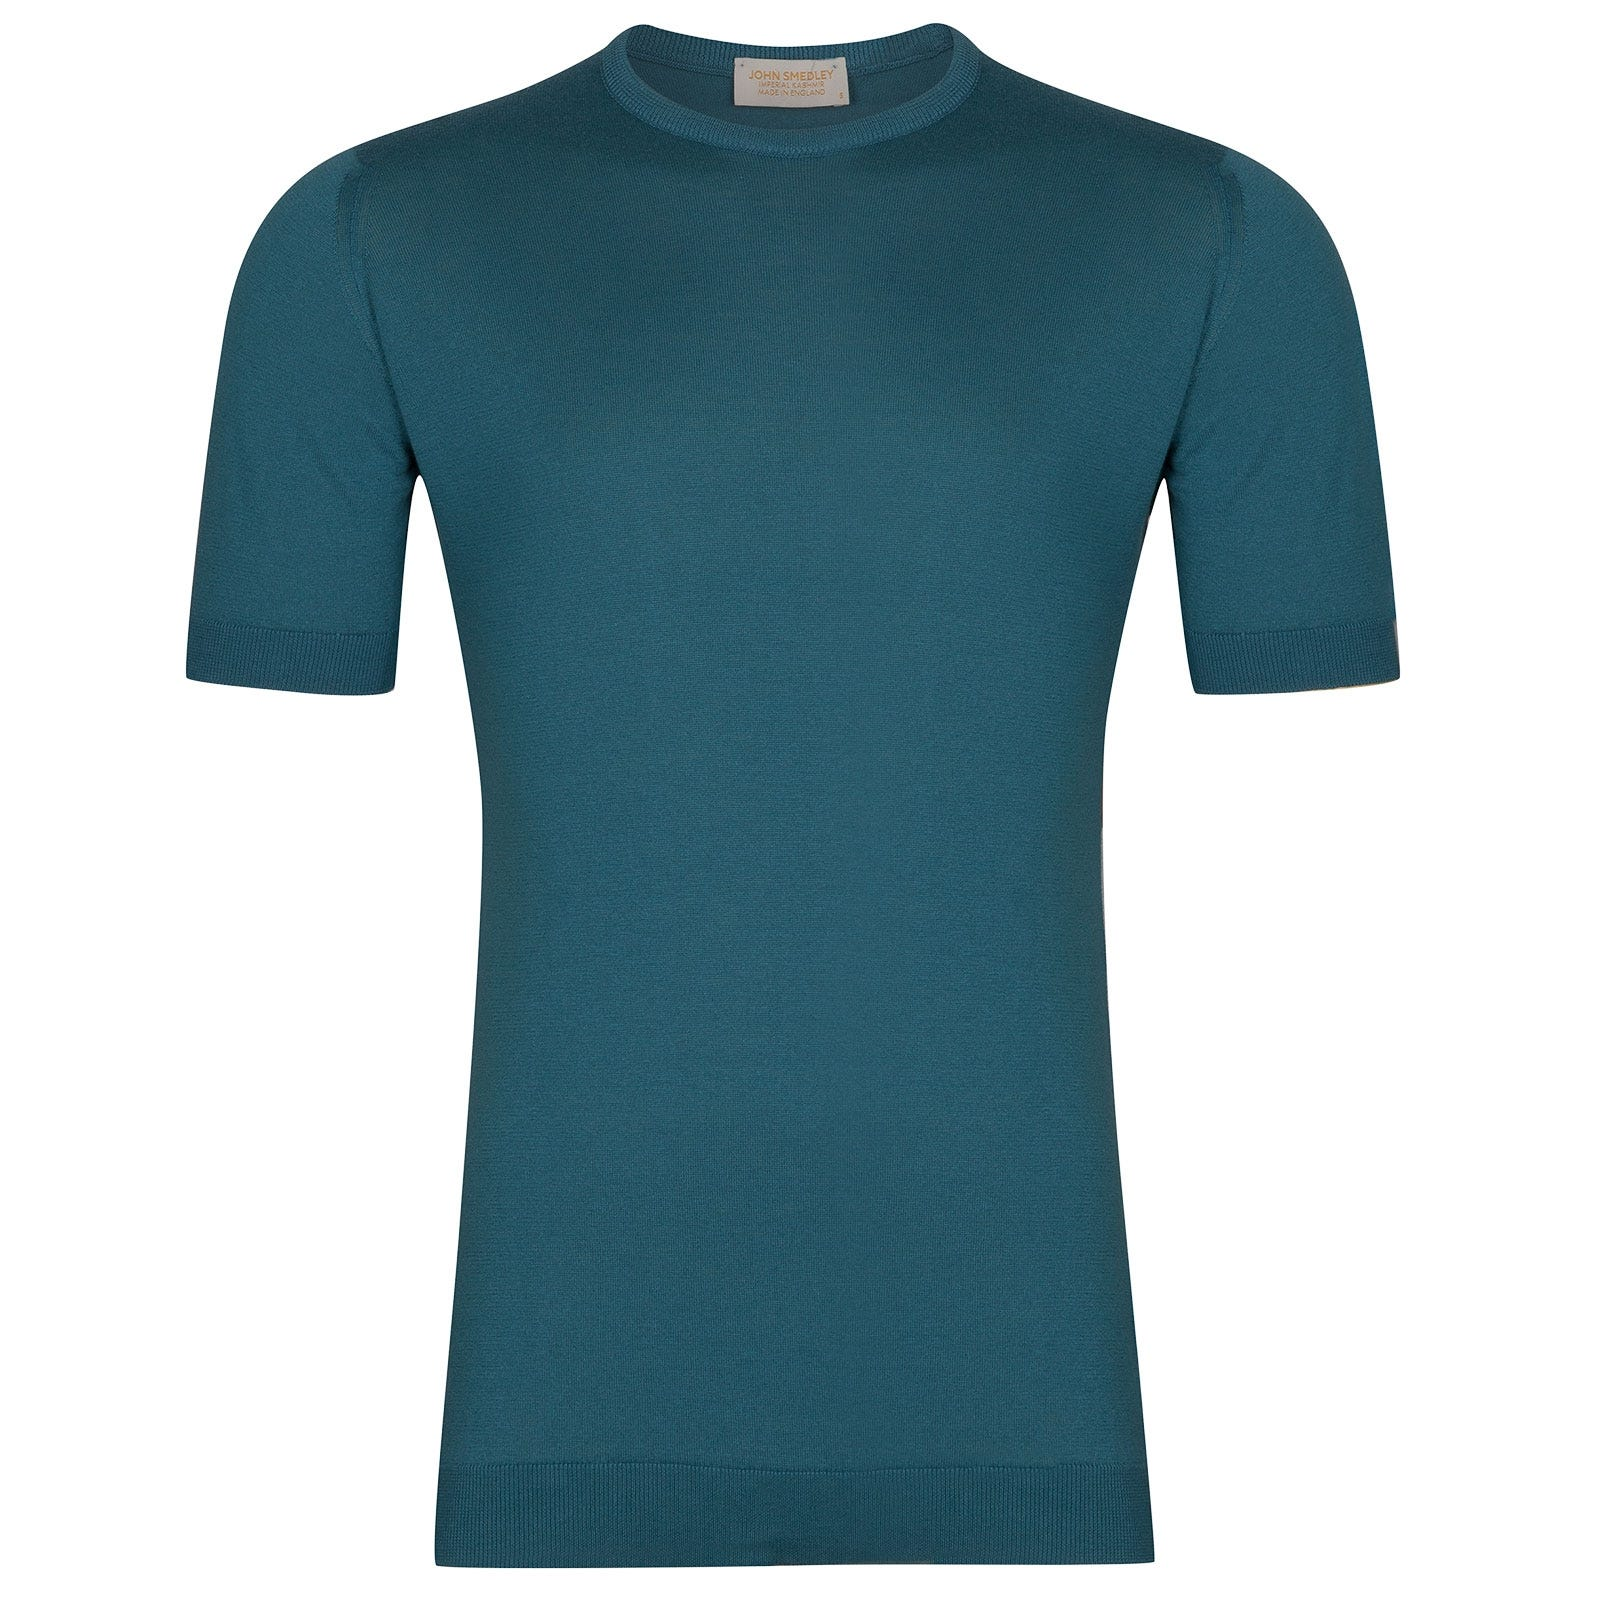 John Smedley Stonwell Sea Island Cotton and Cashmere T-Shirt in Bias